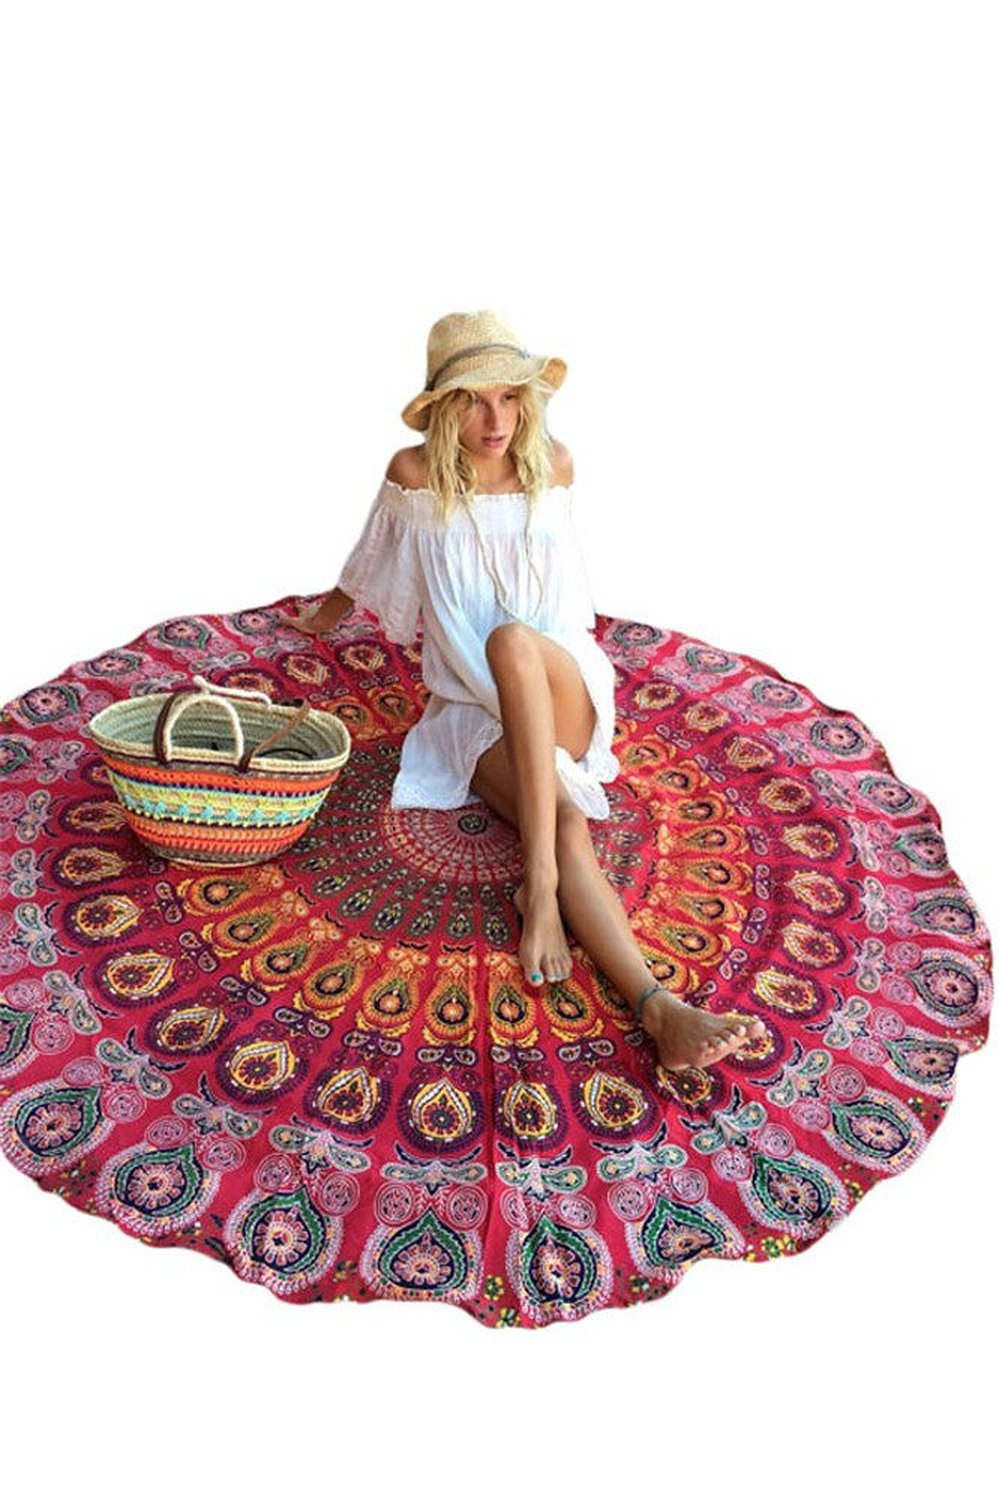 Cfanny Women's Indian Mandala Roundie Beach Throw Tapestry Round Yoga Mat, Red, One size at Amazon Women's Clothing store: